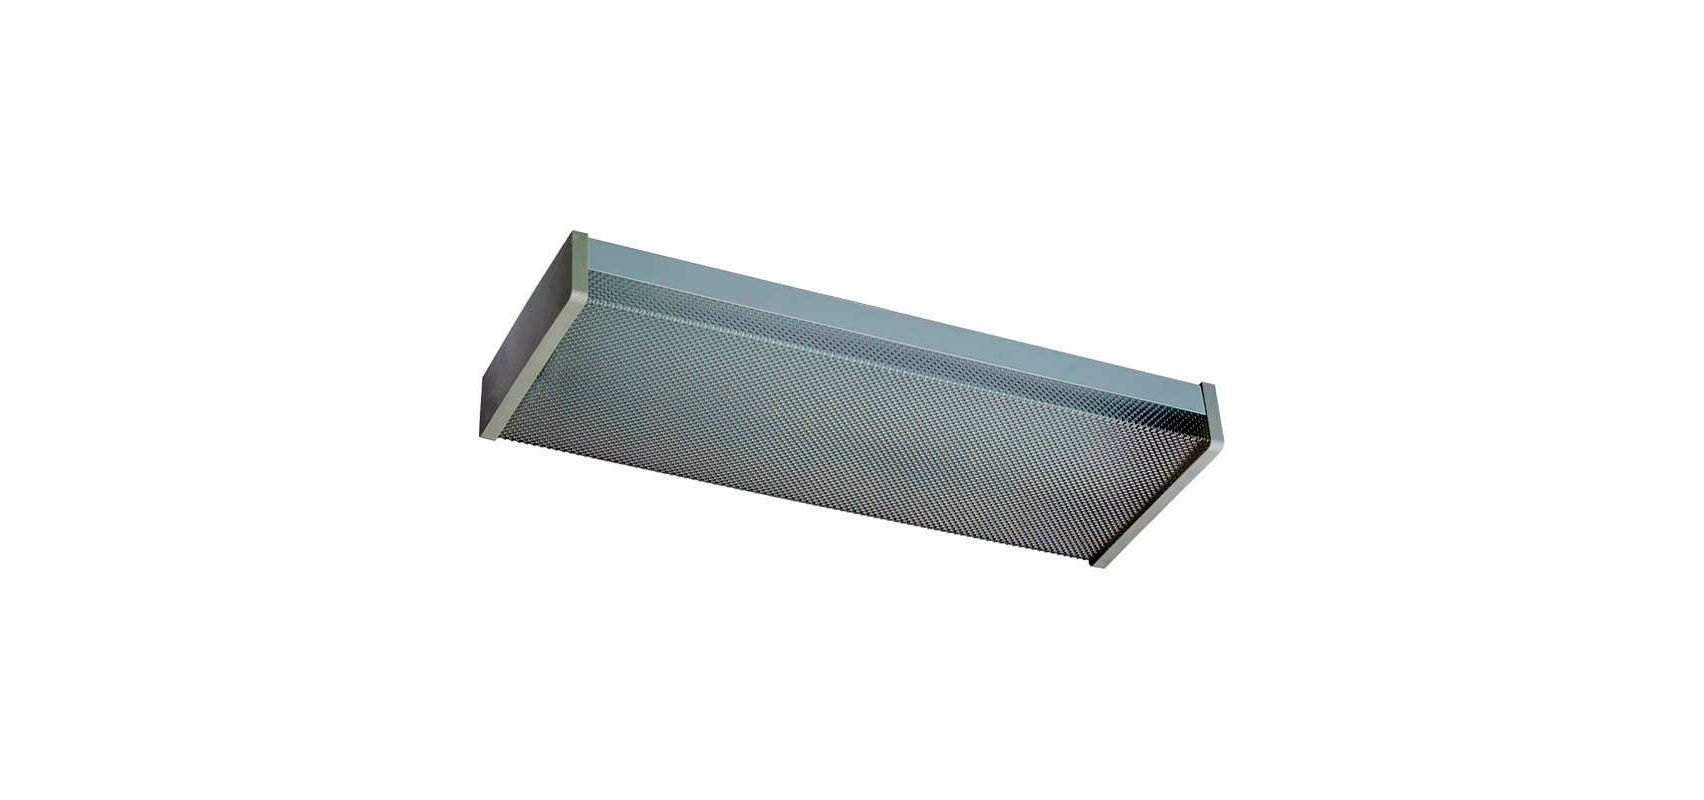 Quorum International Q82124-2 2 Light Flushmount Fluorescent Fixture